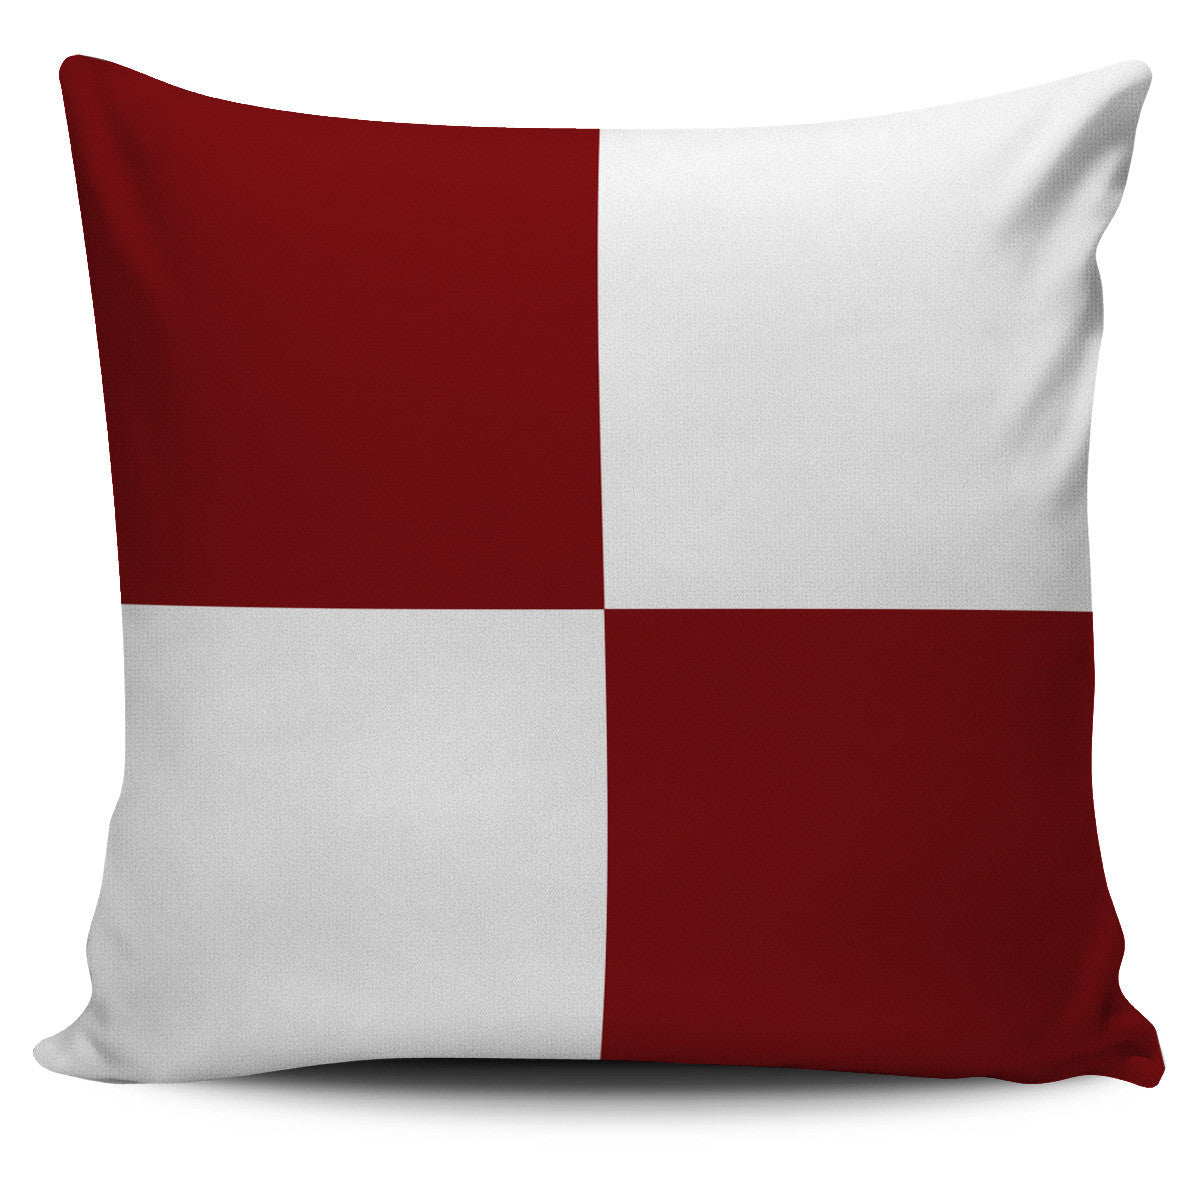 Letter U - Nautical Signal Flag Pillow Cover